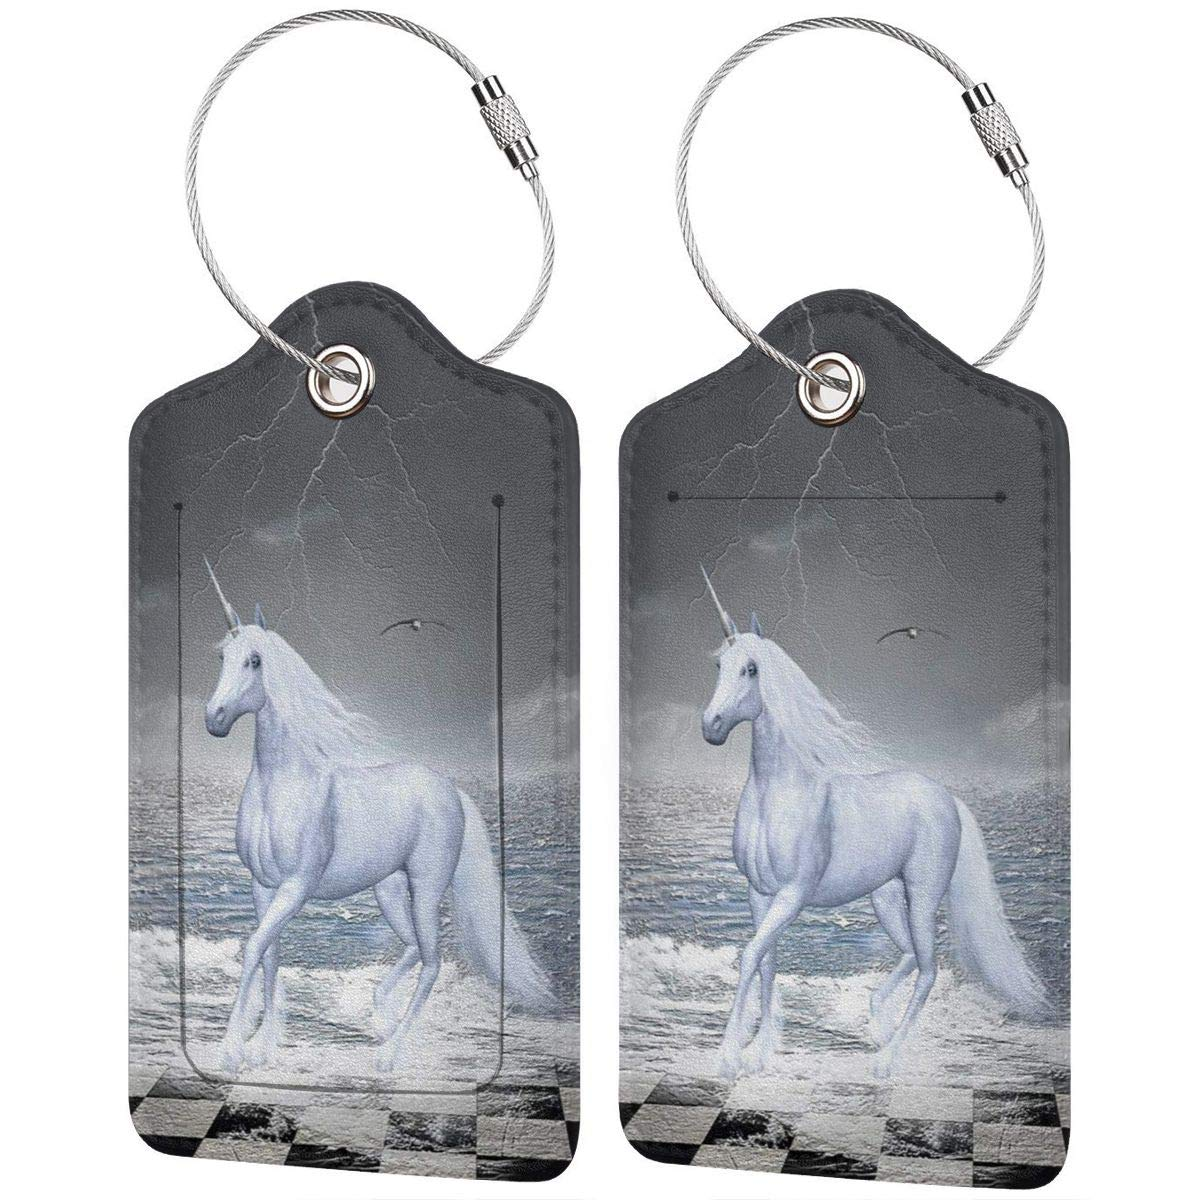 Leather Luggage Tag Sea On Chessboard With A Unicorn Horse Luggage Tags For Suitcase Travel Lover Gifts For Men Women 2 PCS